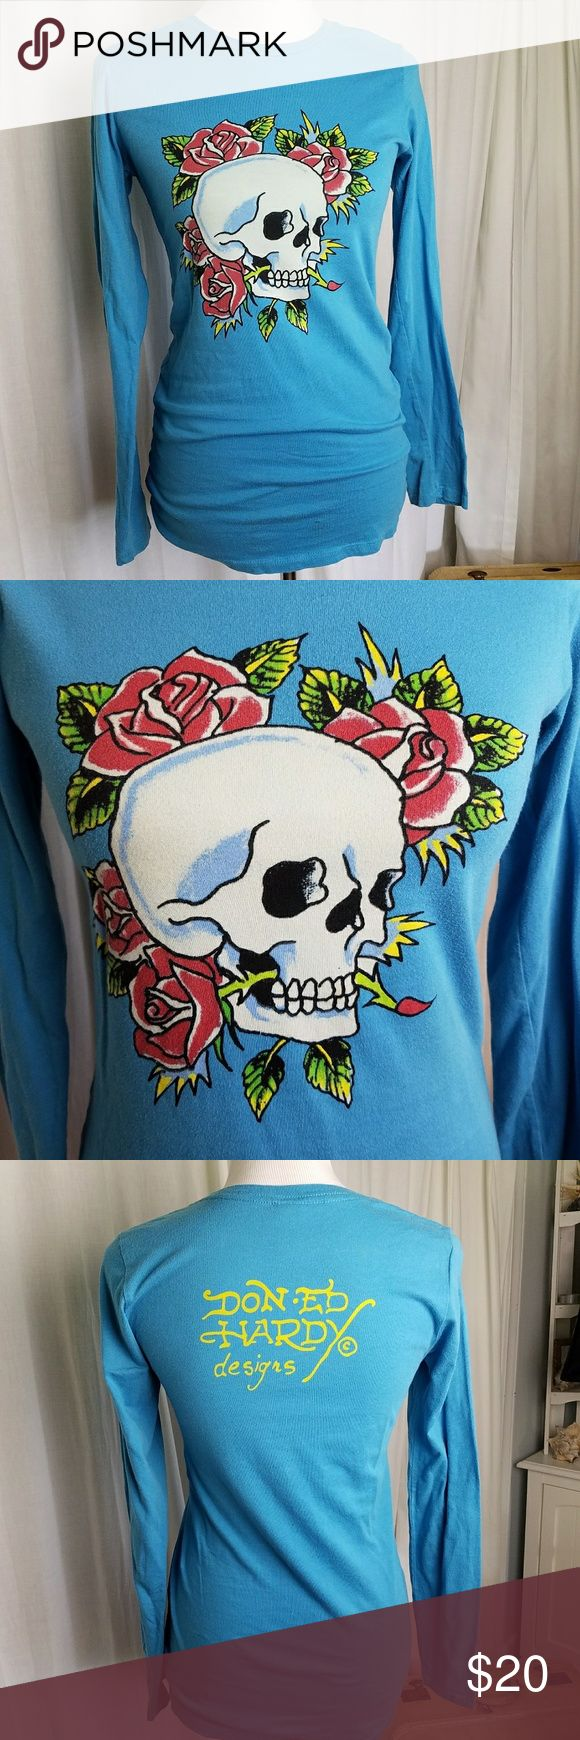 """Ed Hardy Long Sleeve Top Ed Hardy long sleeve top. Women's size MEDIUM Turquoise blue with skull and roses print. Don Ed Hardy Designs logo on back.  Gently pre-owned, with no rips, holes or stains noted  Fabric Content: 100% cotton  Measurements (lying flat): Chest (armpit to armpit): 16"""" Length: 29"""" Ed Hardy Tops Tees - Long Sleeve"""